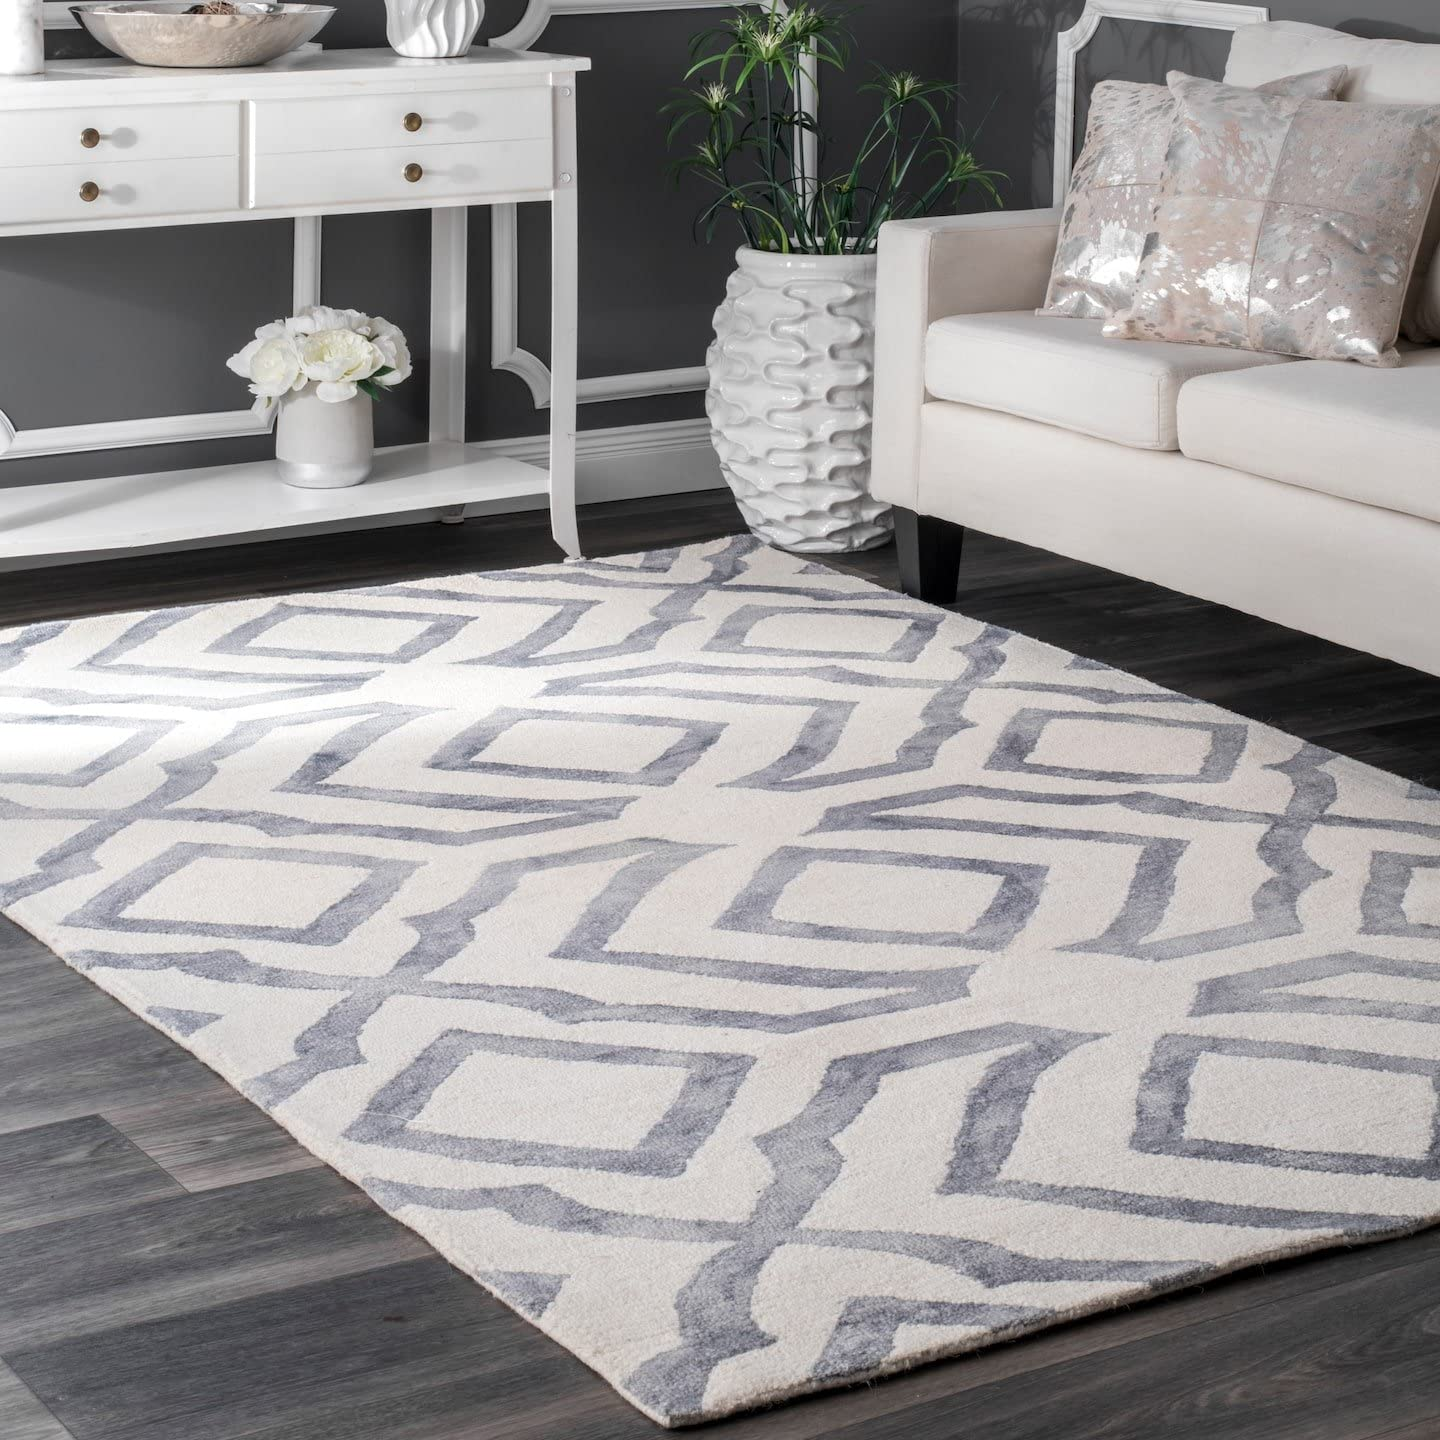 nuLOOM Baggett Hand Looped Wool Rug, 8 6 x 11 6 , Grey